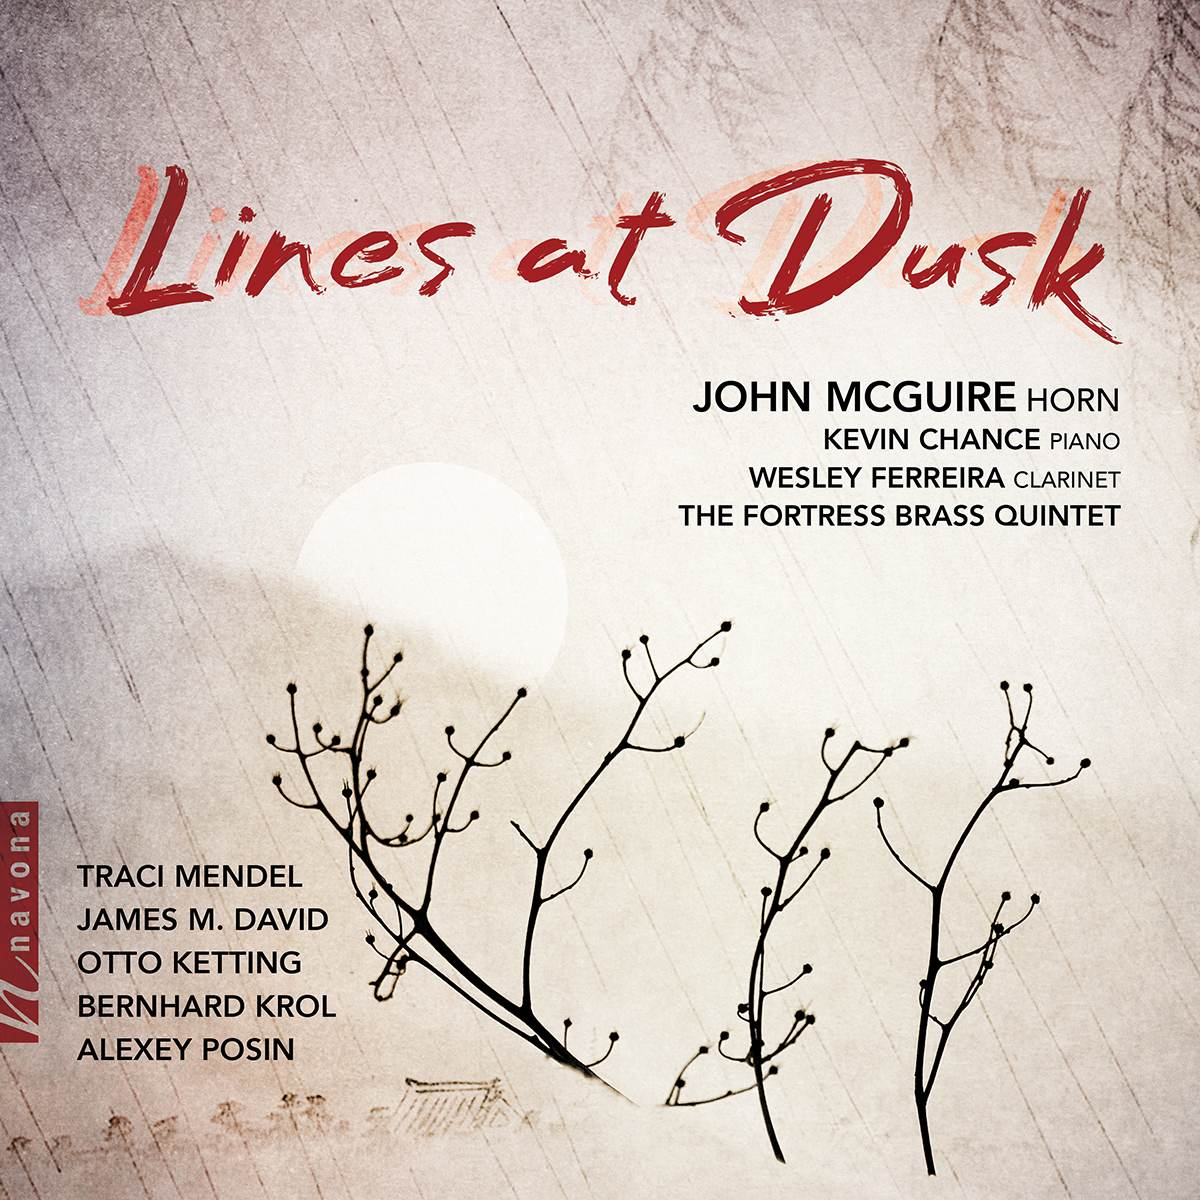 Lines at Dusk - John McGuire - Album Cover